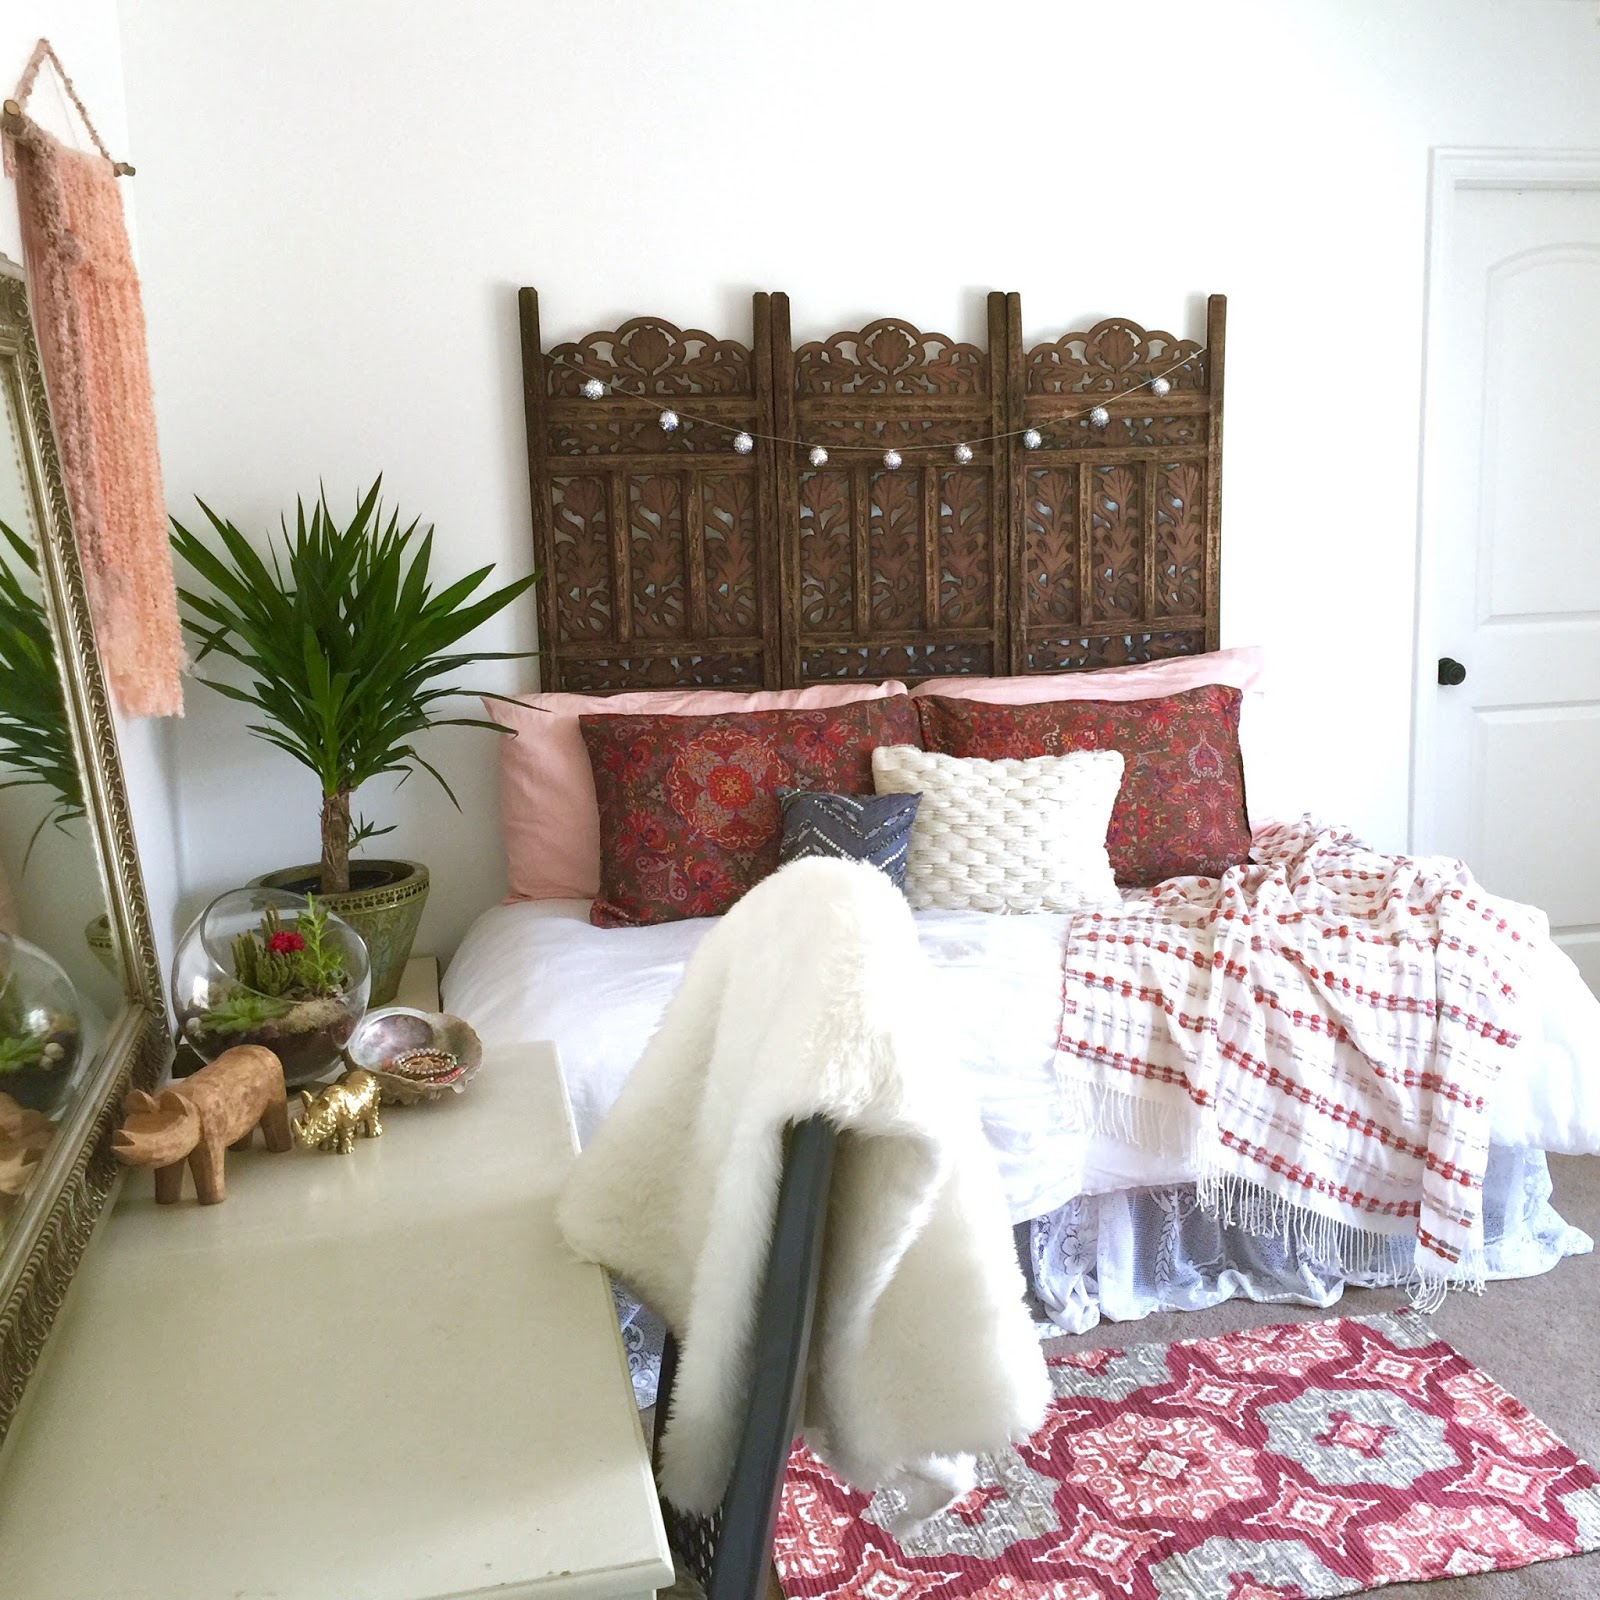 Restlessrisa: BOHO Bedroom